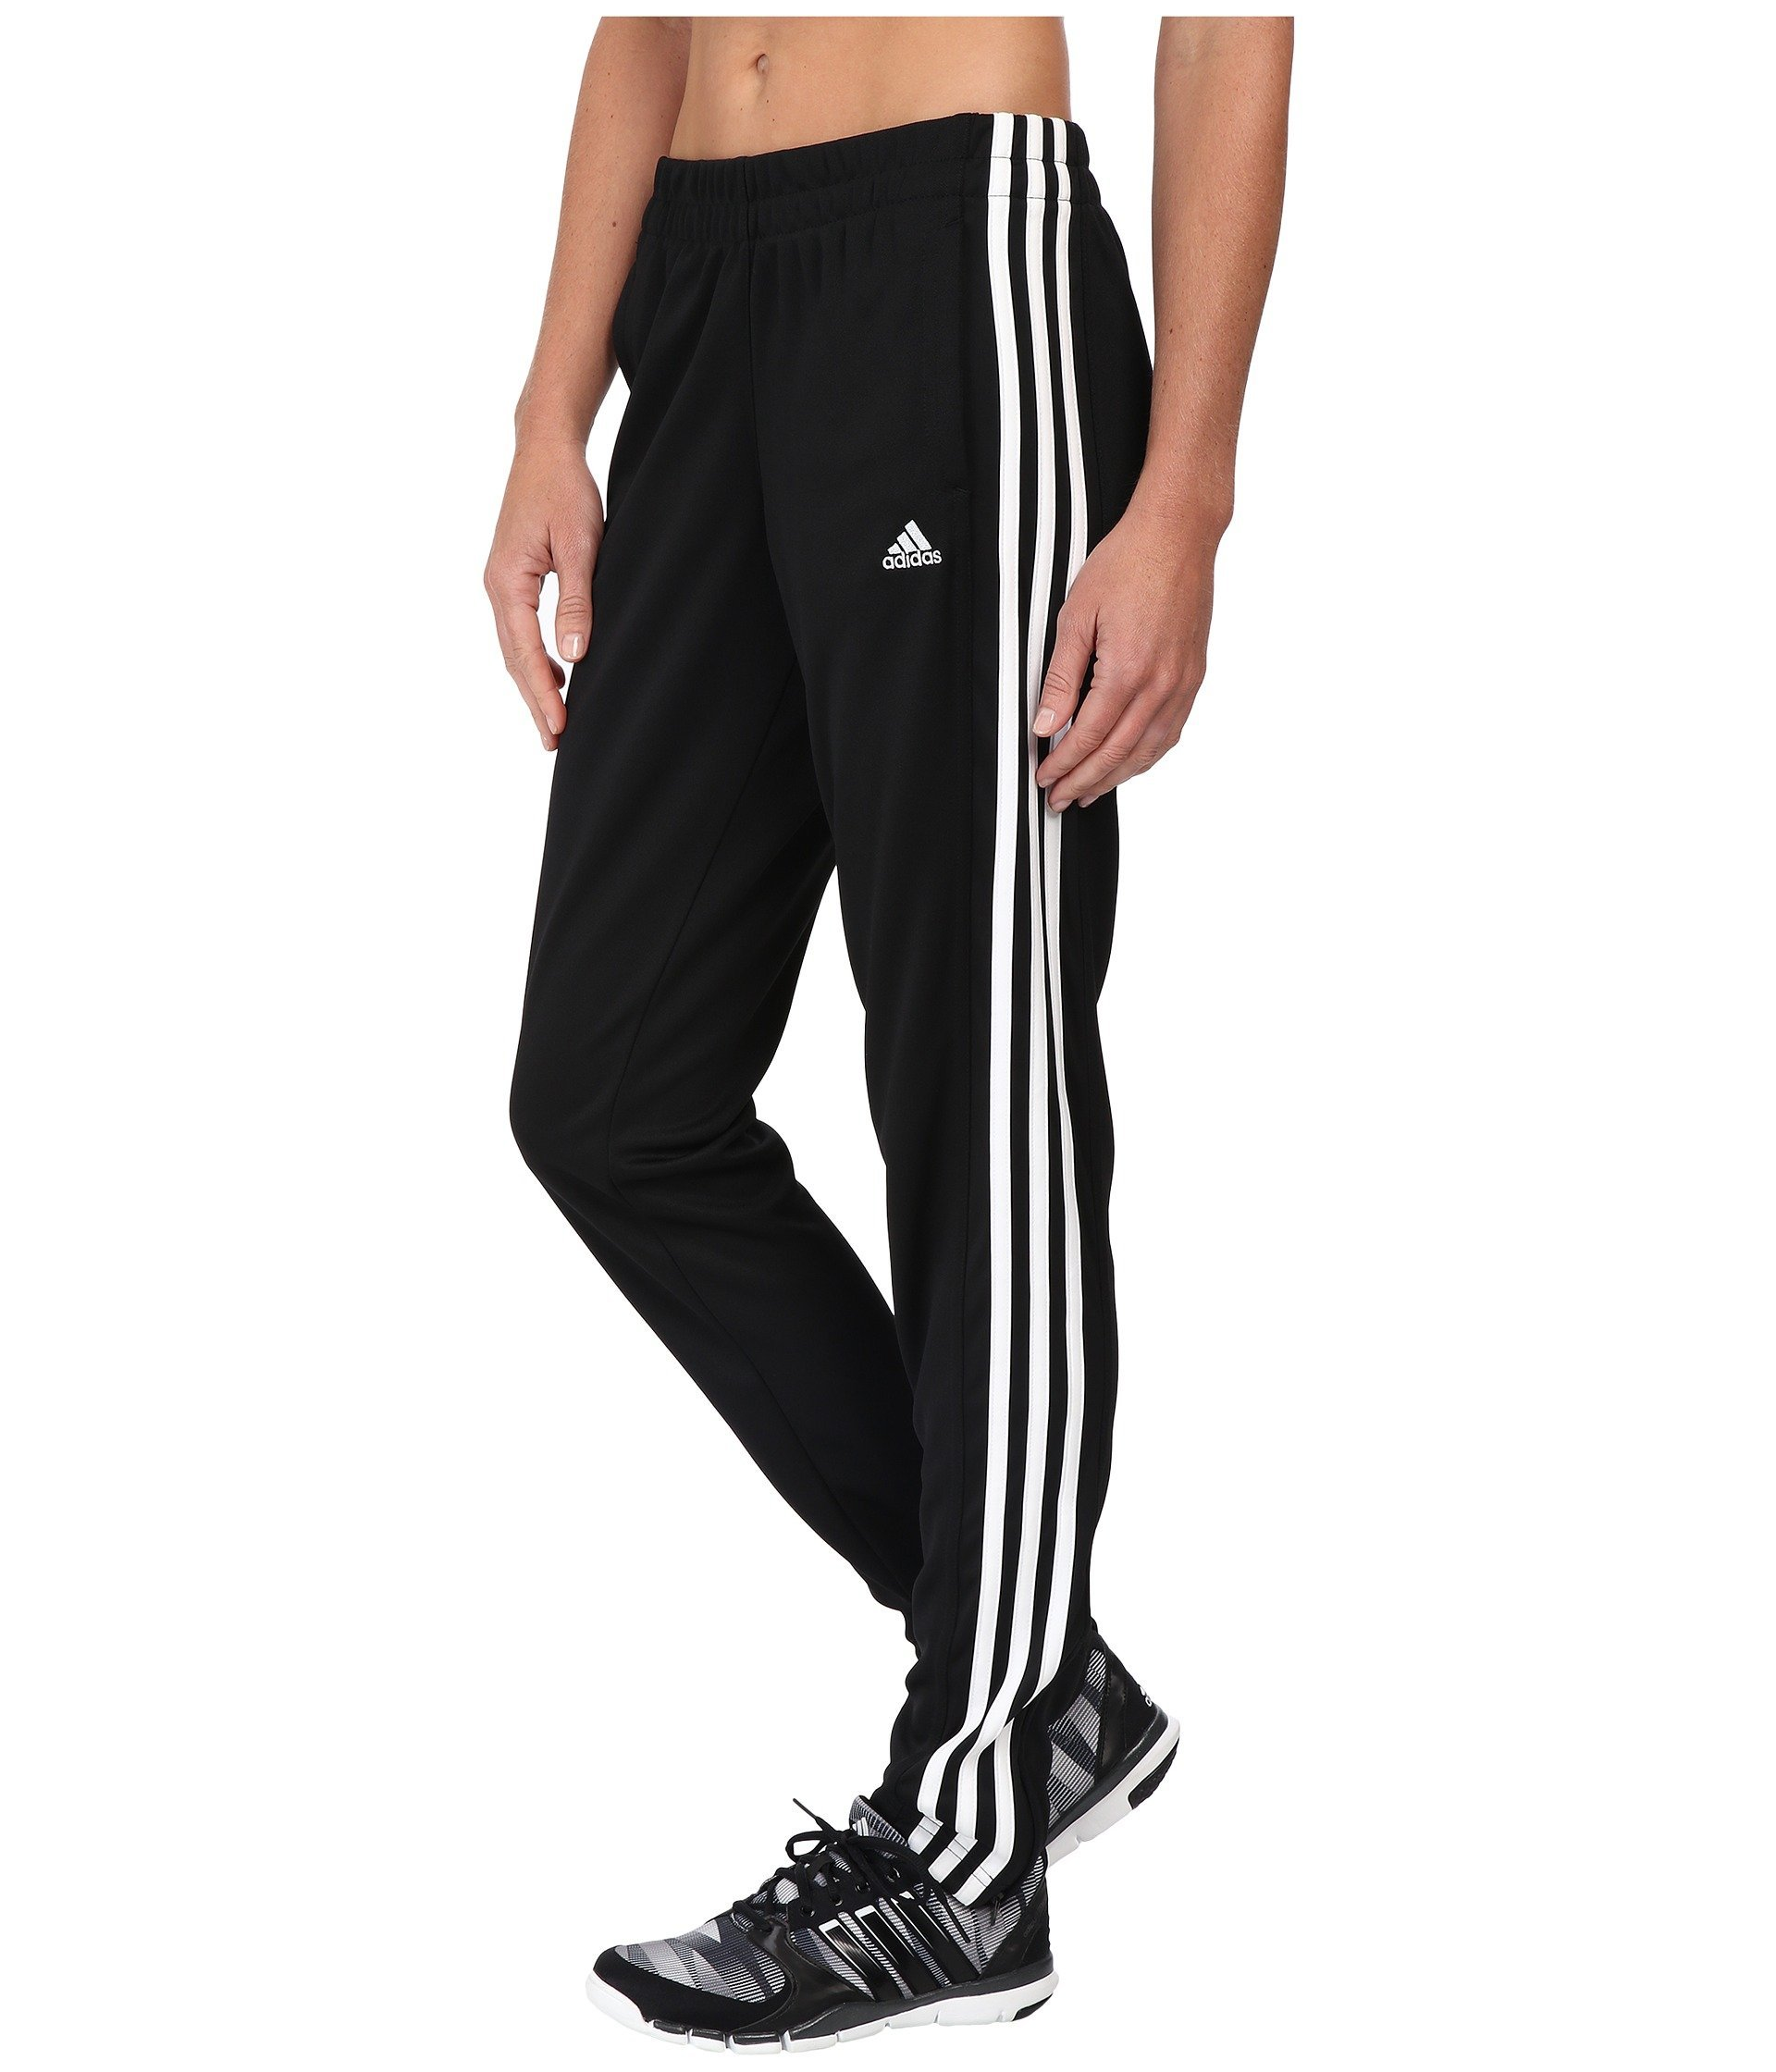 adidas Women's T10 Pants, Black/White, X-Small by adidas